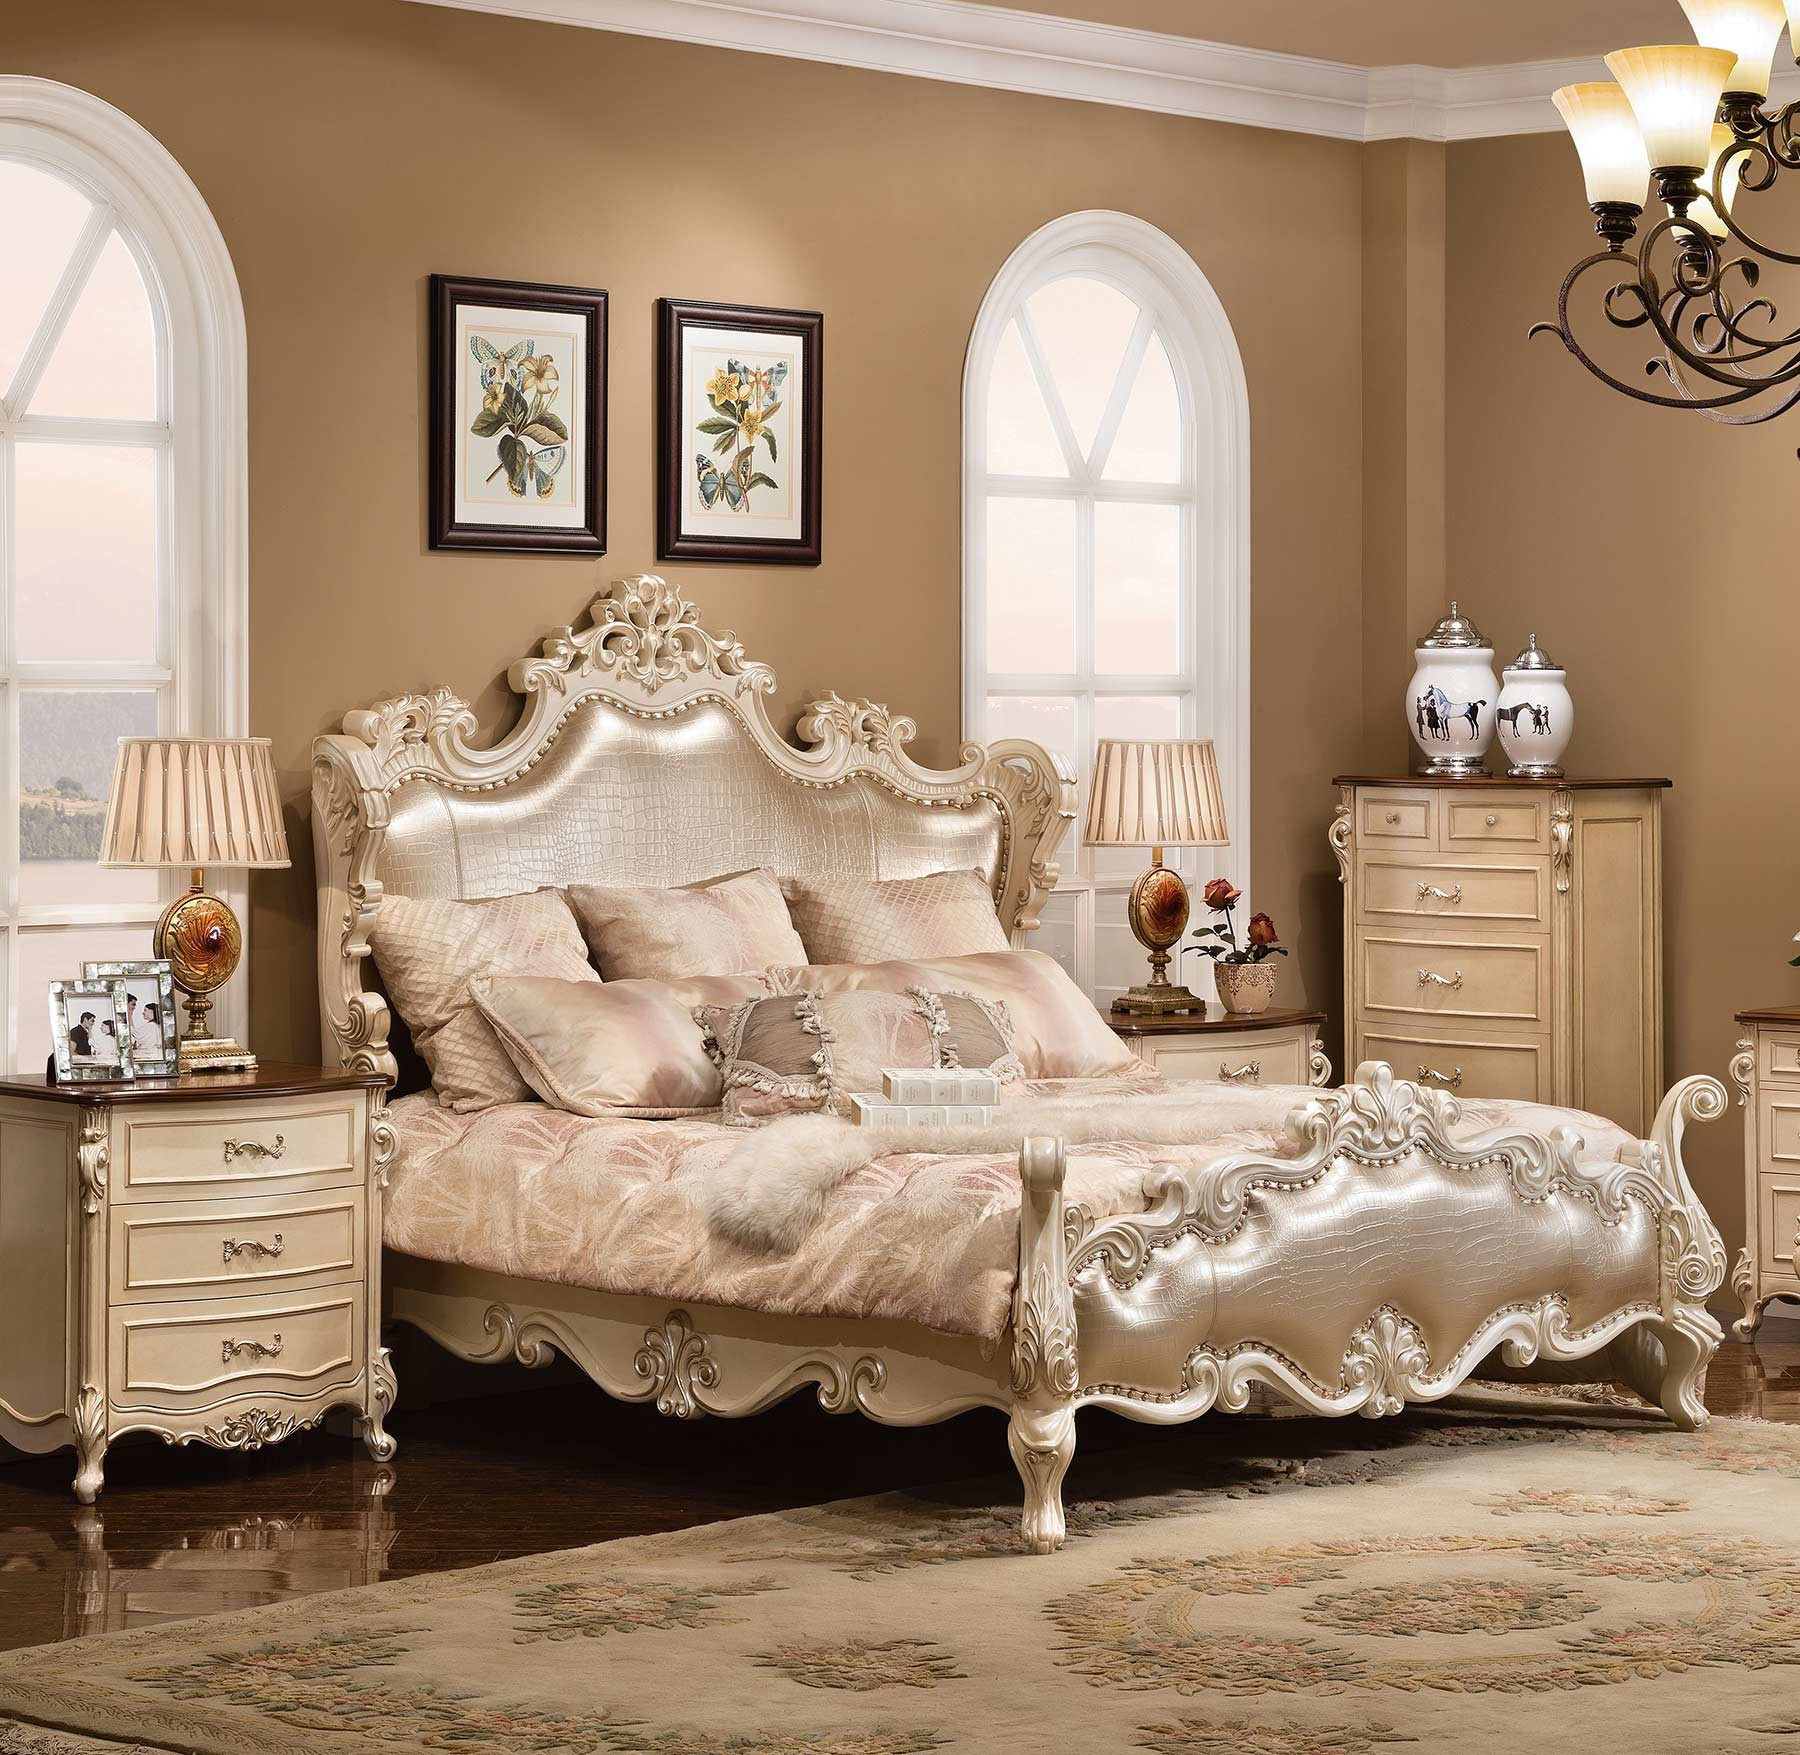 Salisbury Bed shown in Egyptian Pearl finish